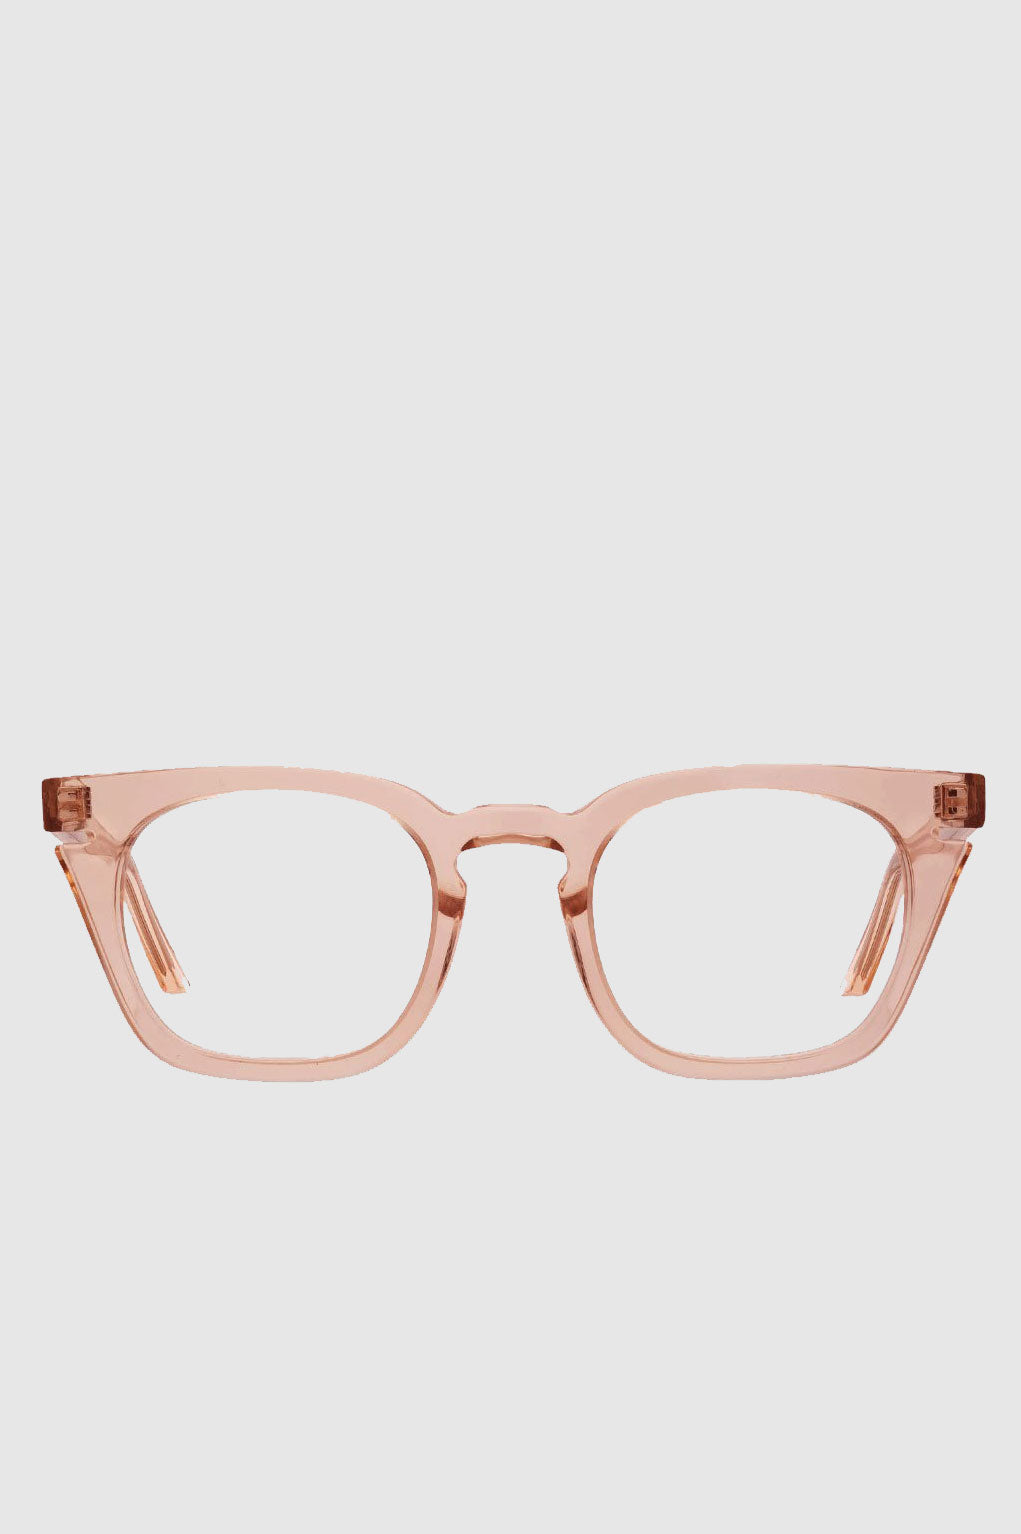 Roseland Optical Glasses in Peach